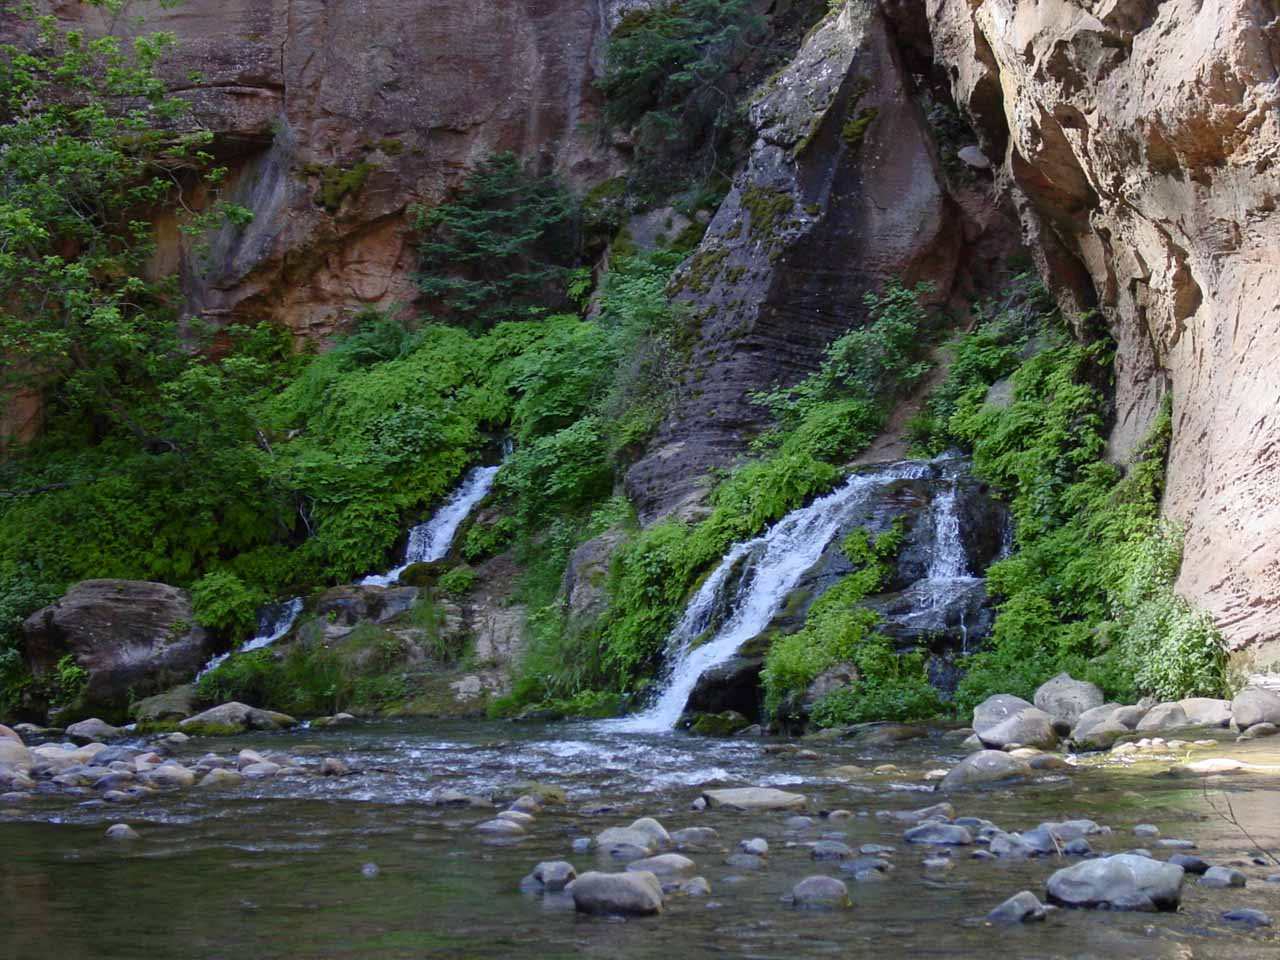 Big Springs, one of a handful of waterfall attractions and obstacles within the Zion Narrows